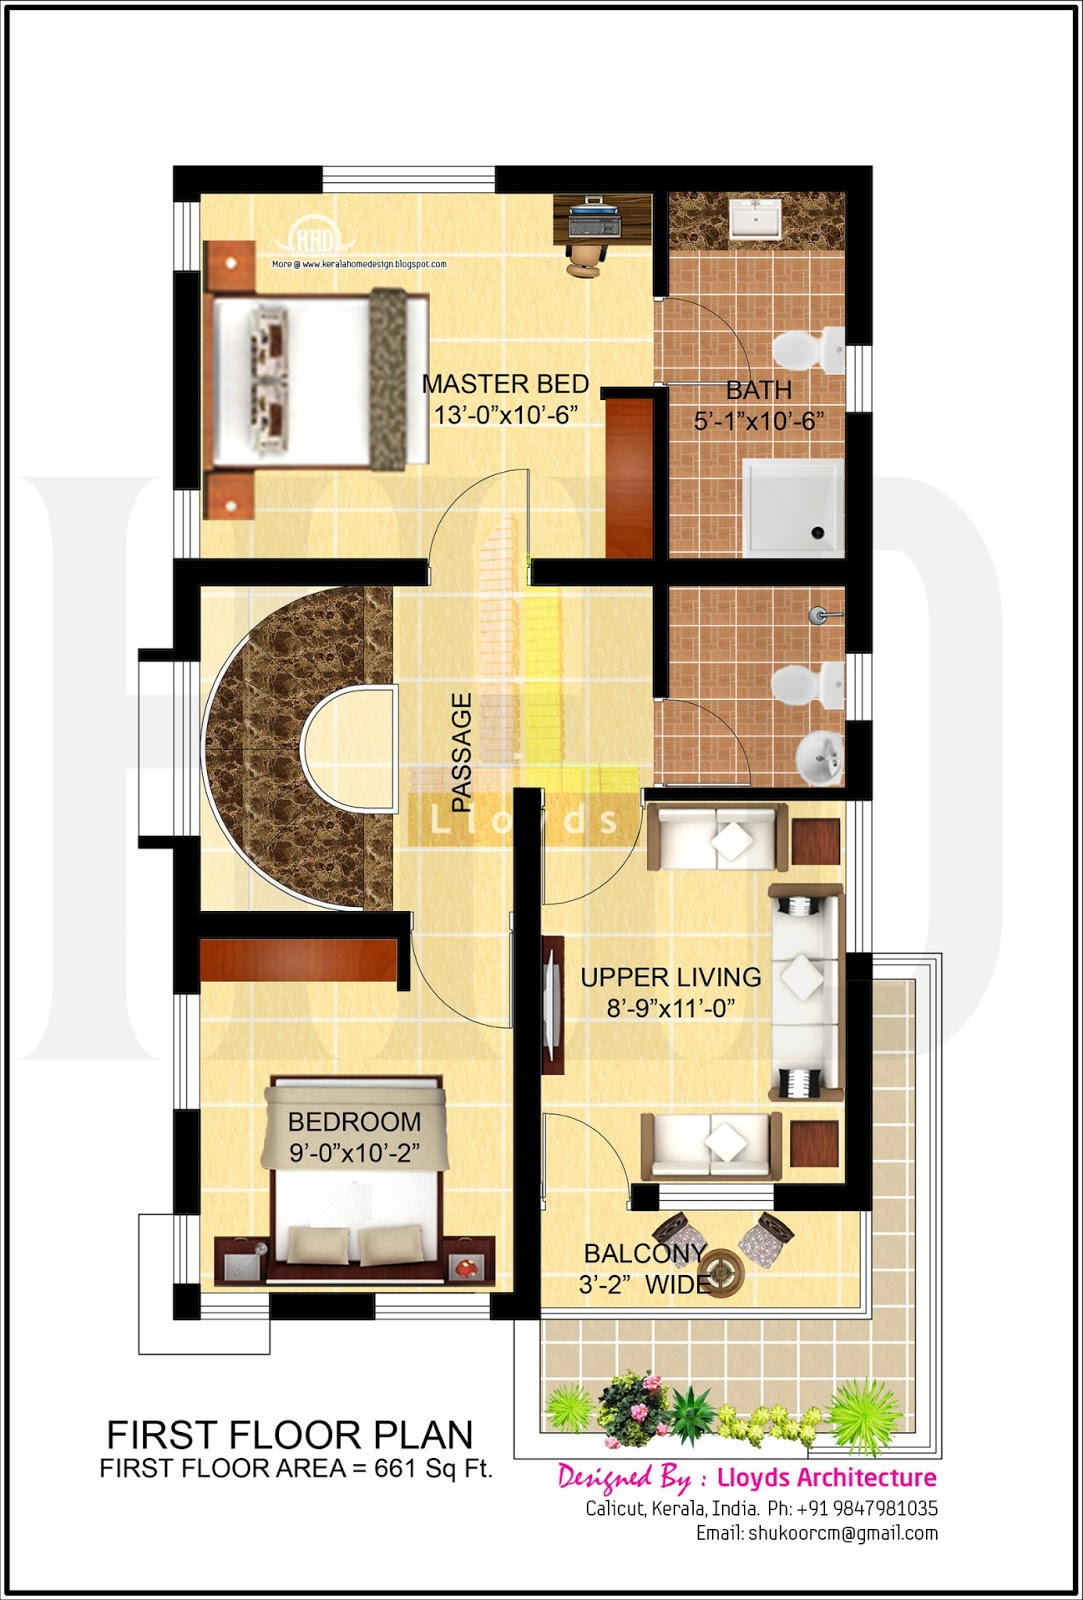 4 bedroom house plan in less that 3 cents home kerala plans for 4 bedroom building plan